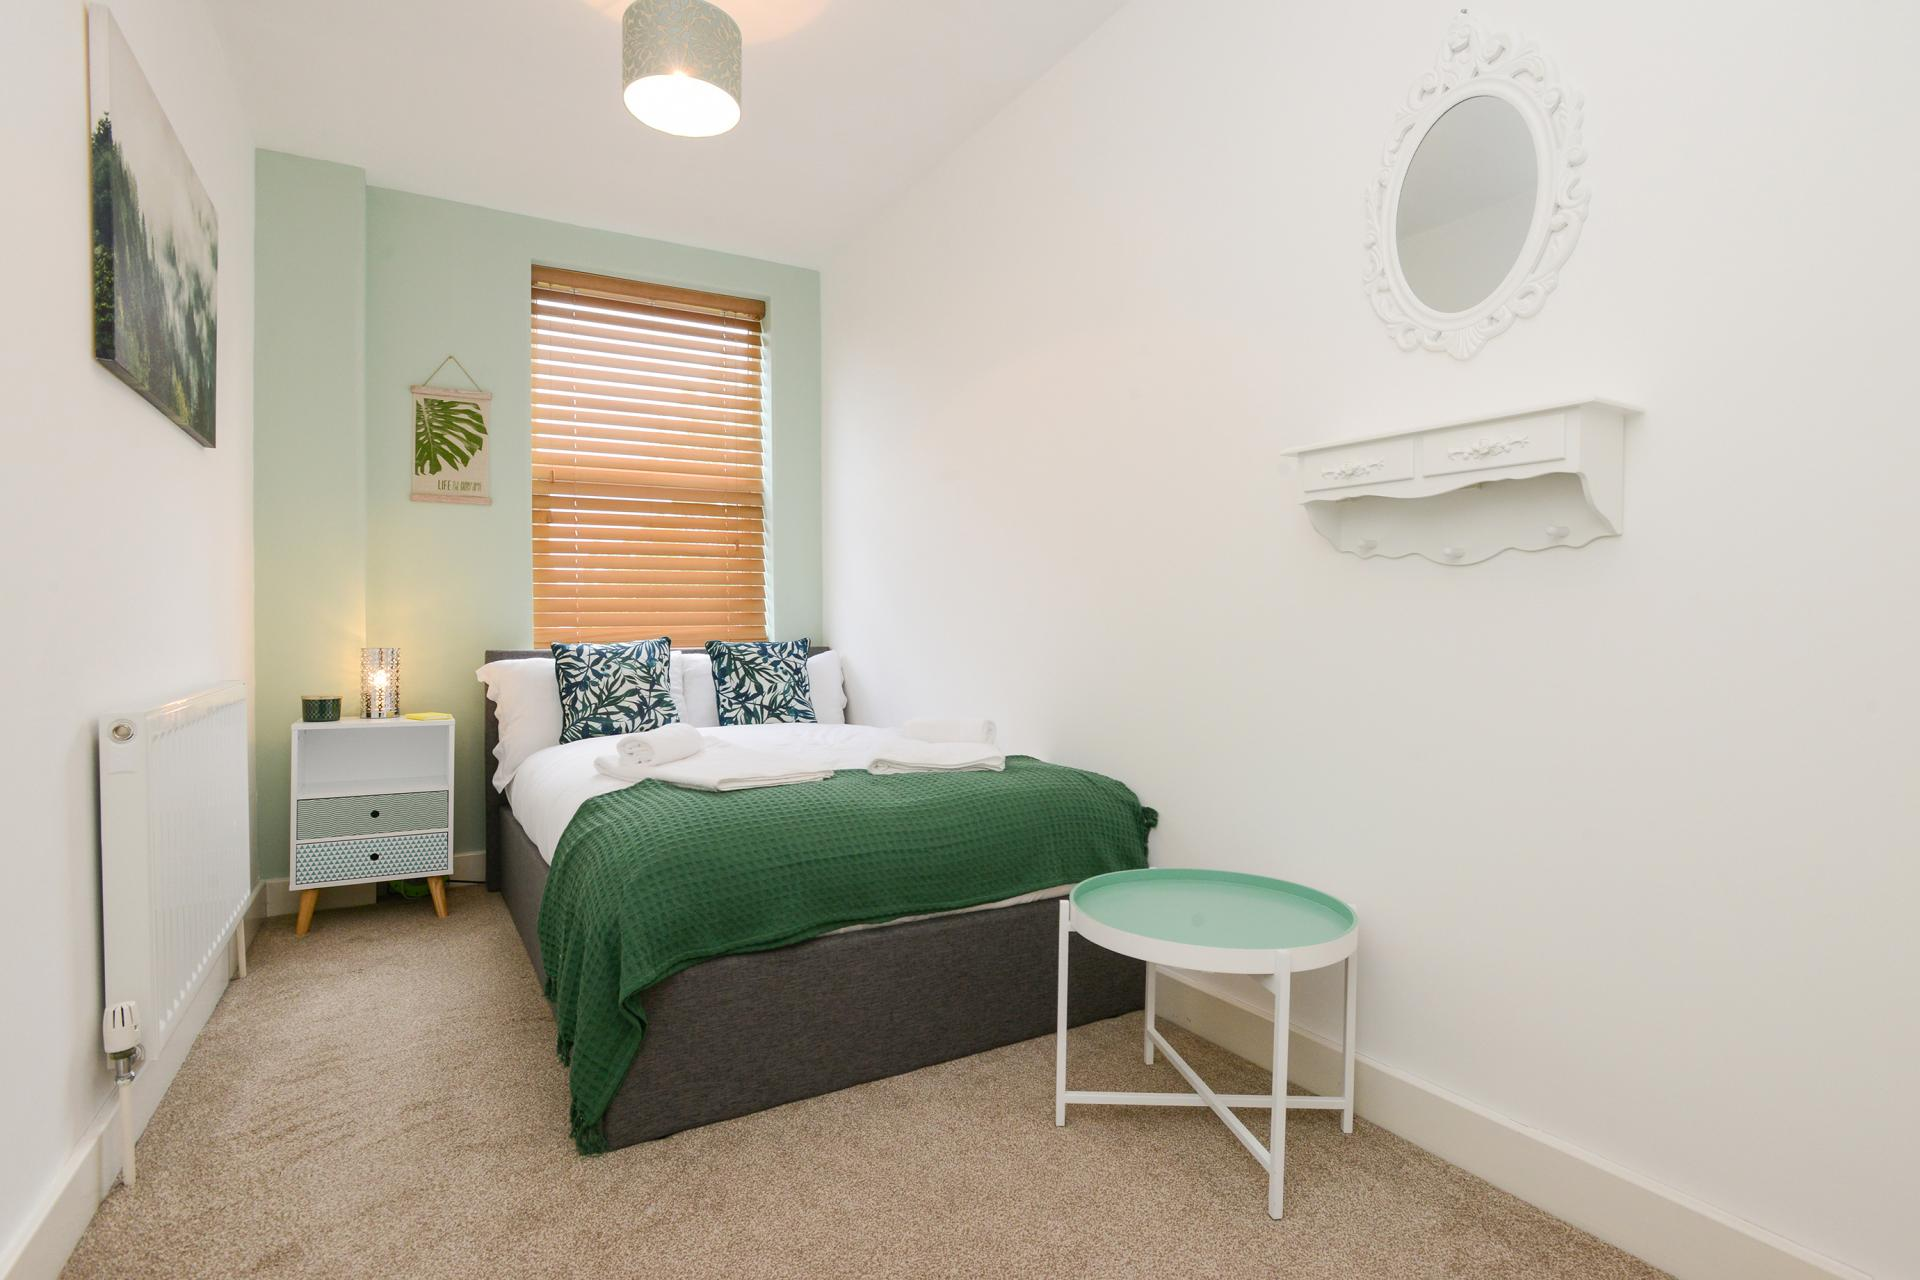 Cosy bedroom at Beeston House, Beeston, Nottingham - Citybase Apartments